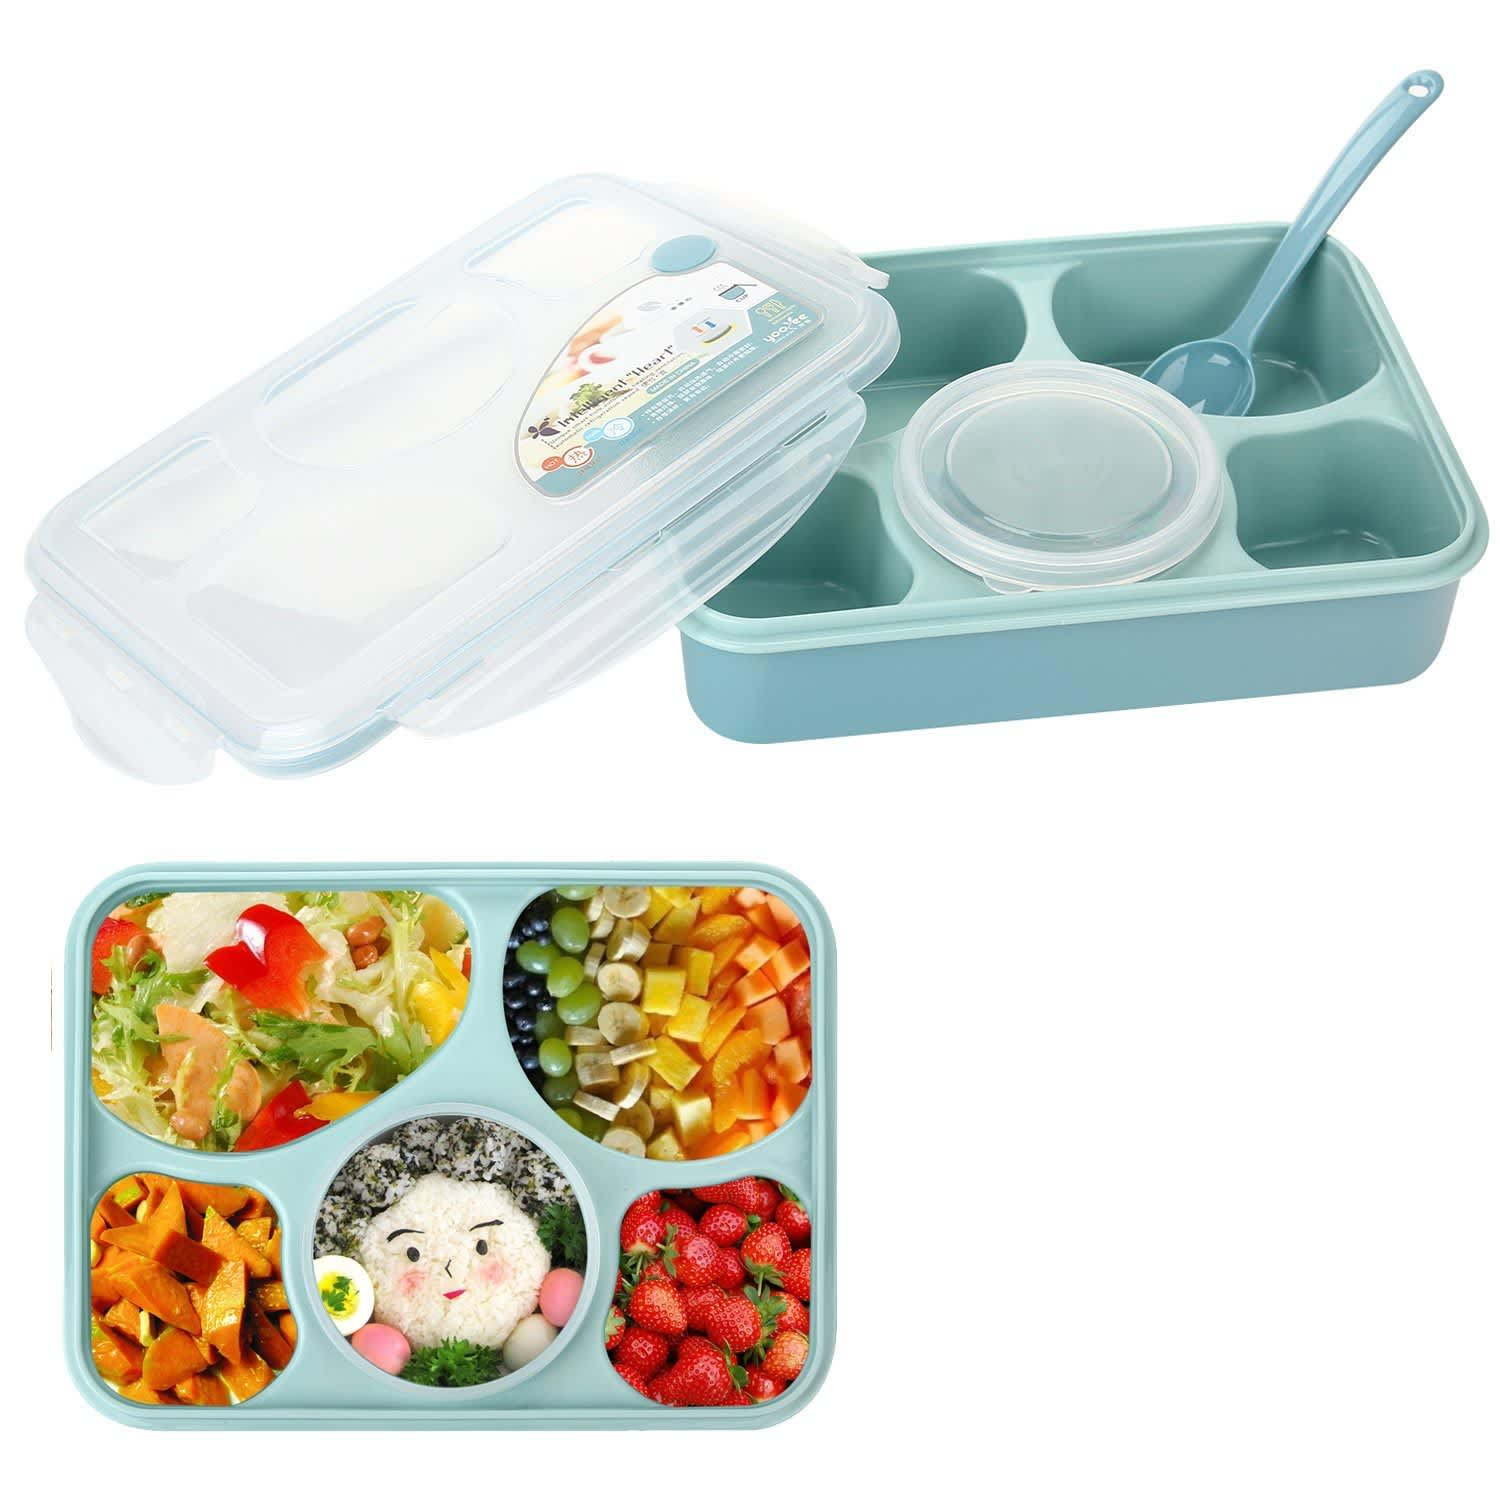 8 Bento Boxes to Help You Brown Bag It: gallery image 3